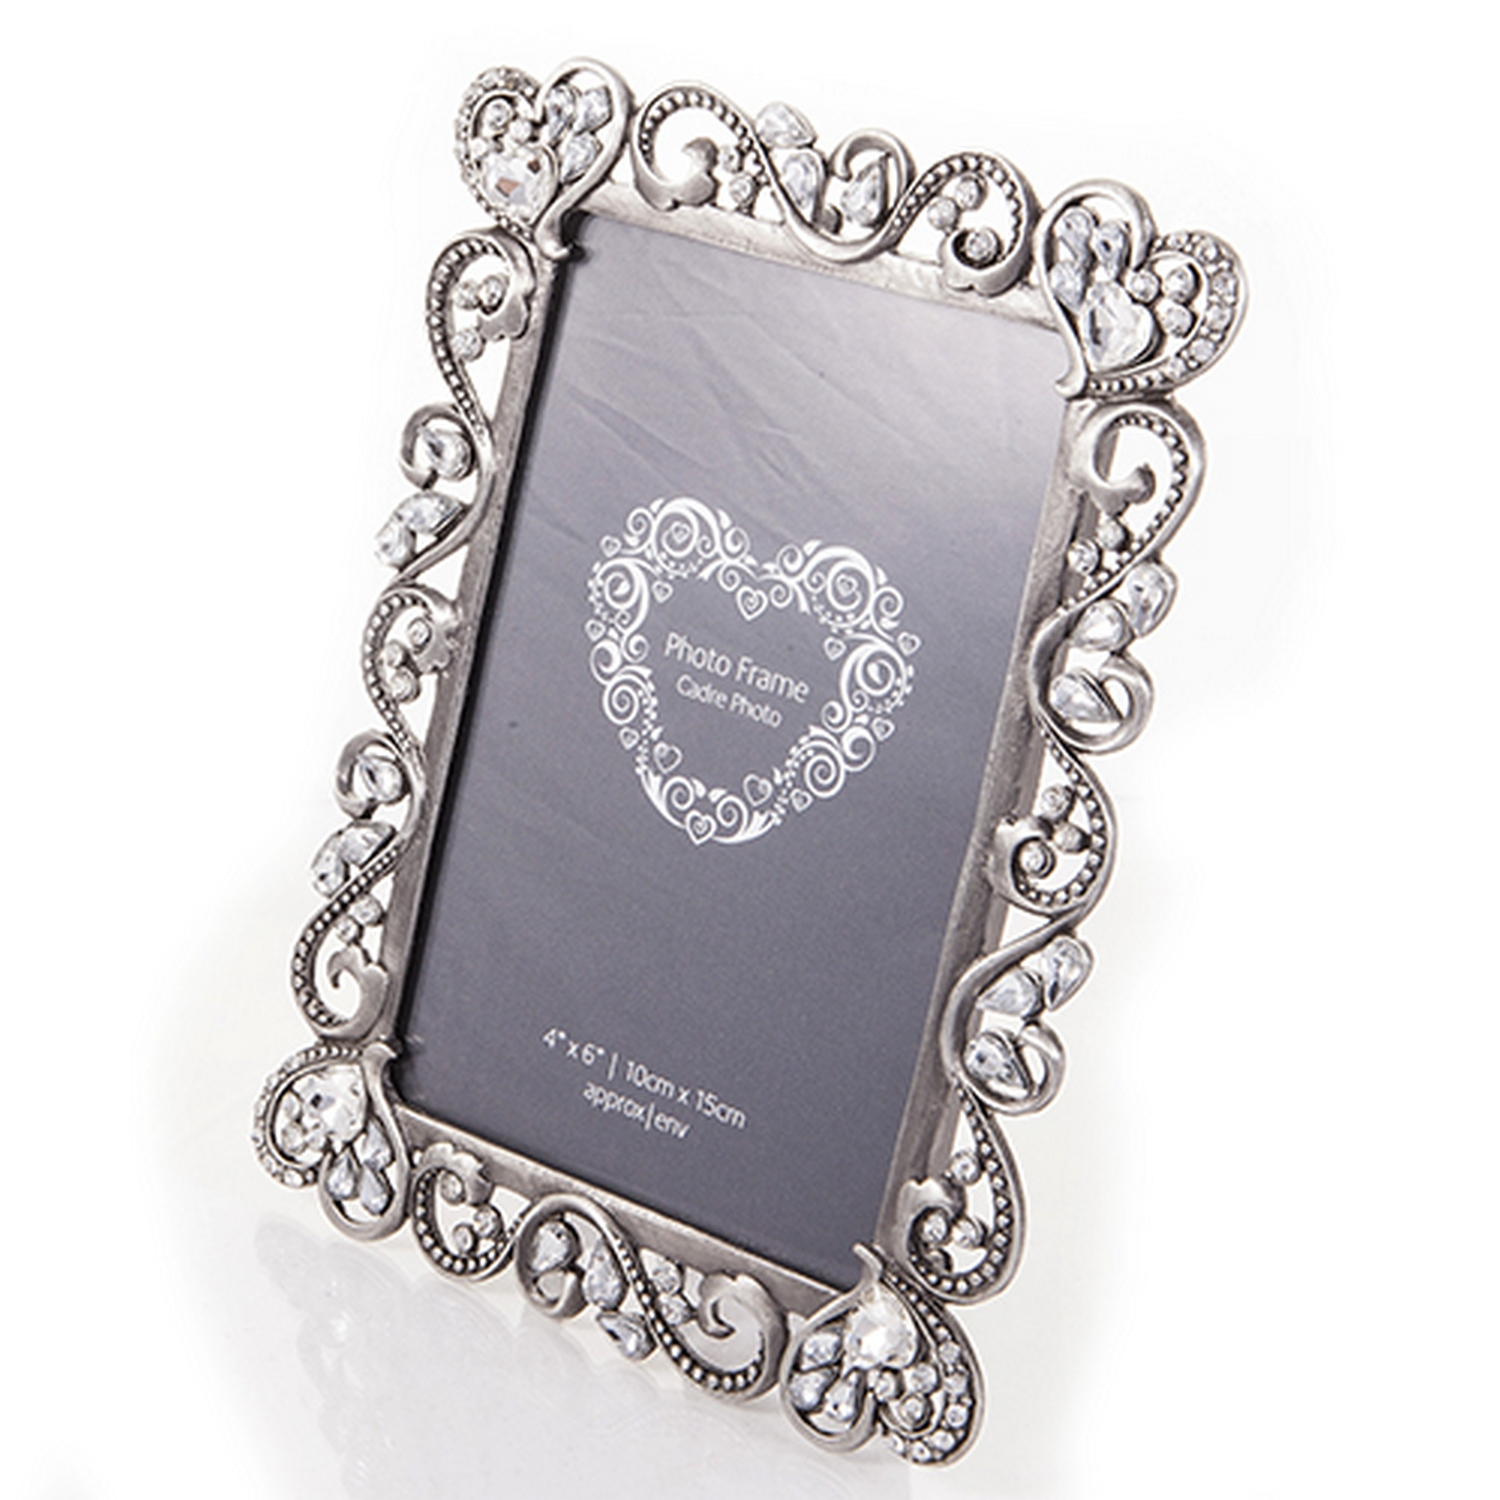 Quality Vintage Style Ornate Diamante Silver Photo Frame  : lrgscaleIMG0442 from www.blendboutique.co.uk size 1500 x 1500 jpeg 705kB